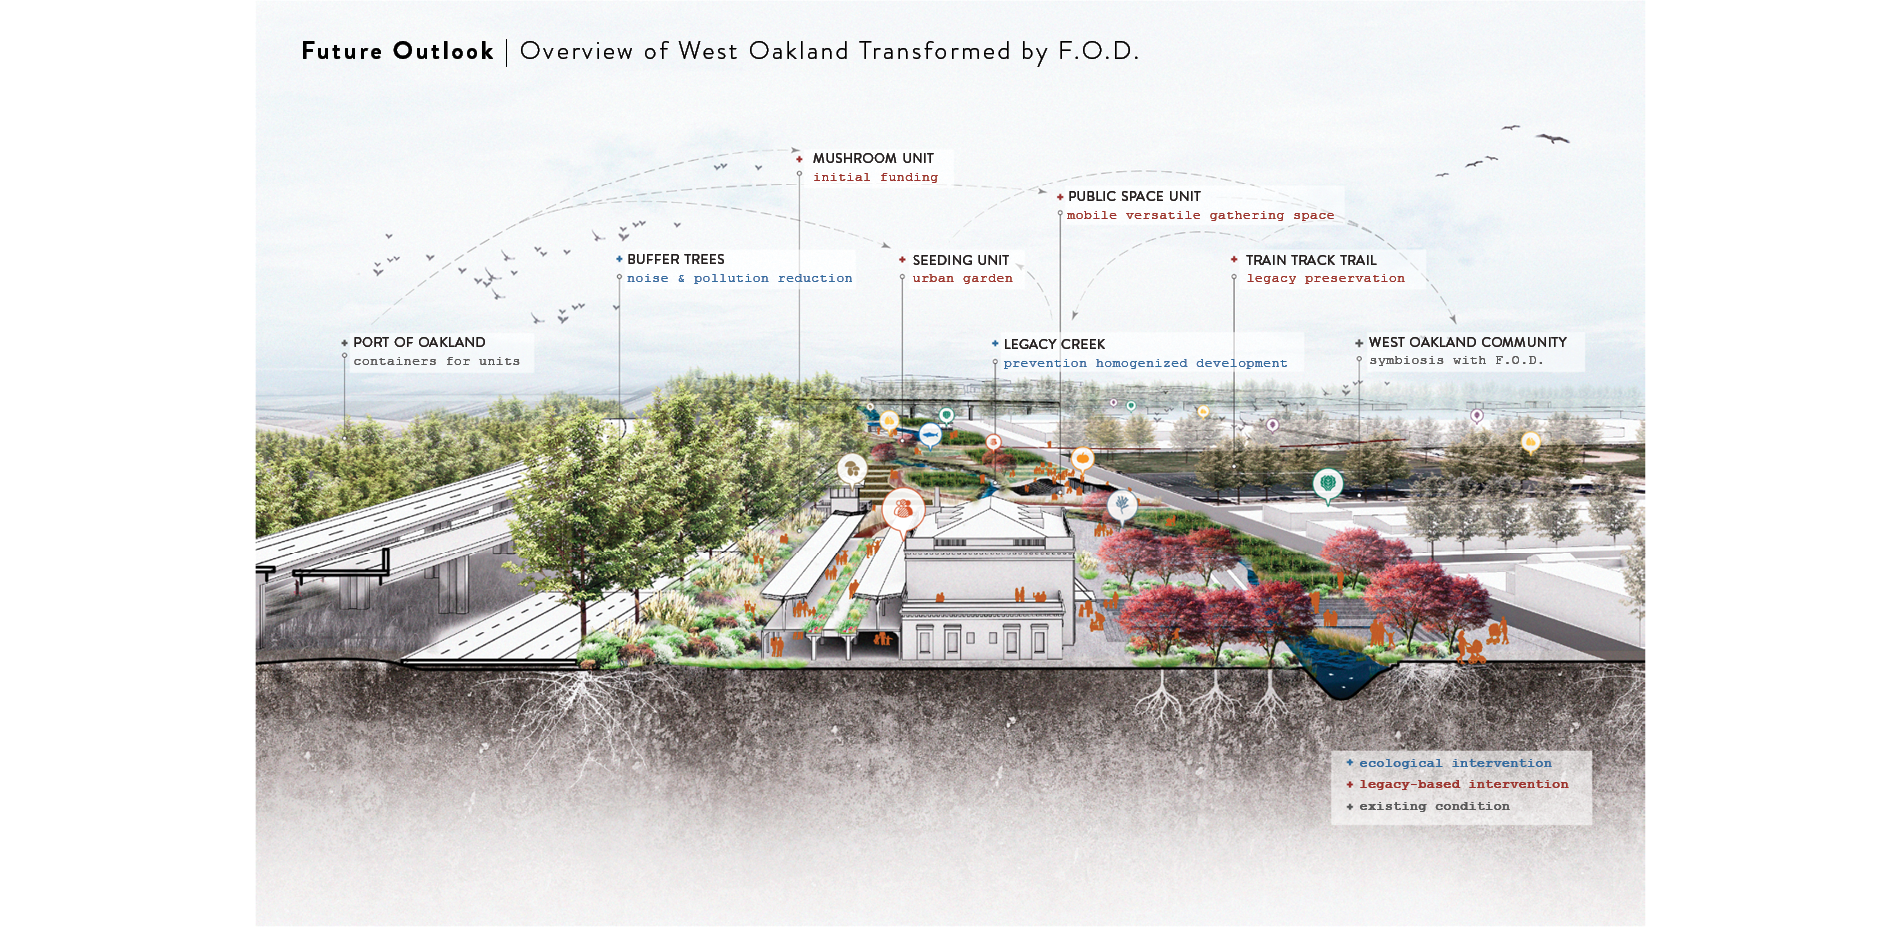 Future Outlook | Overview of West Oakland Transformed by F.O.D.